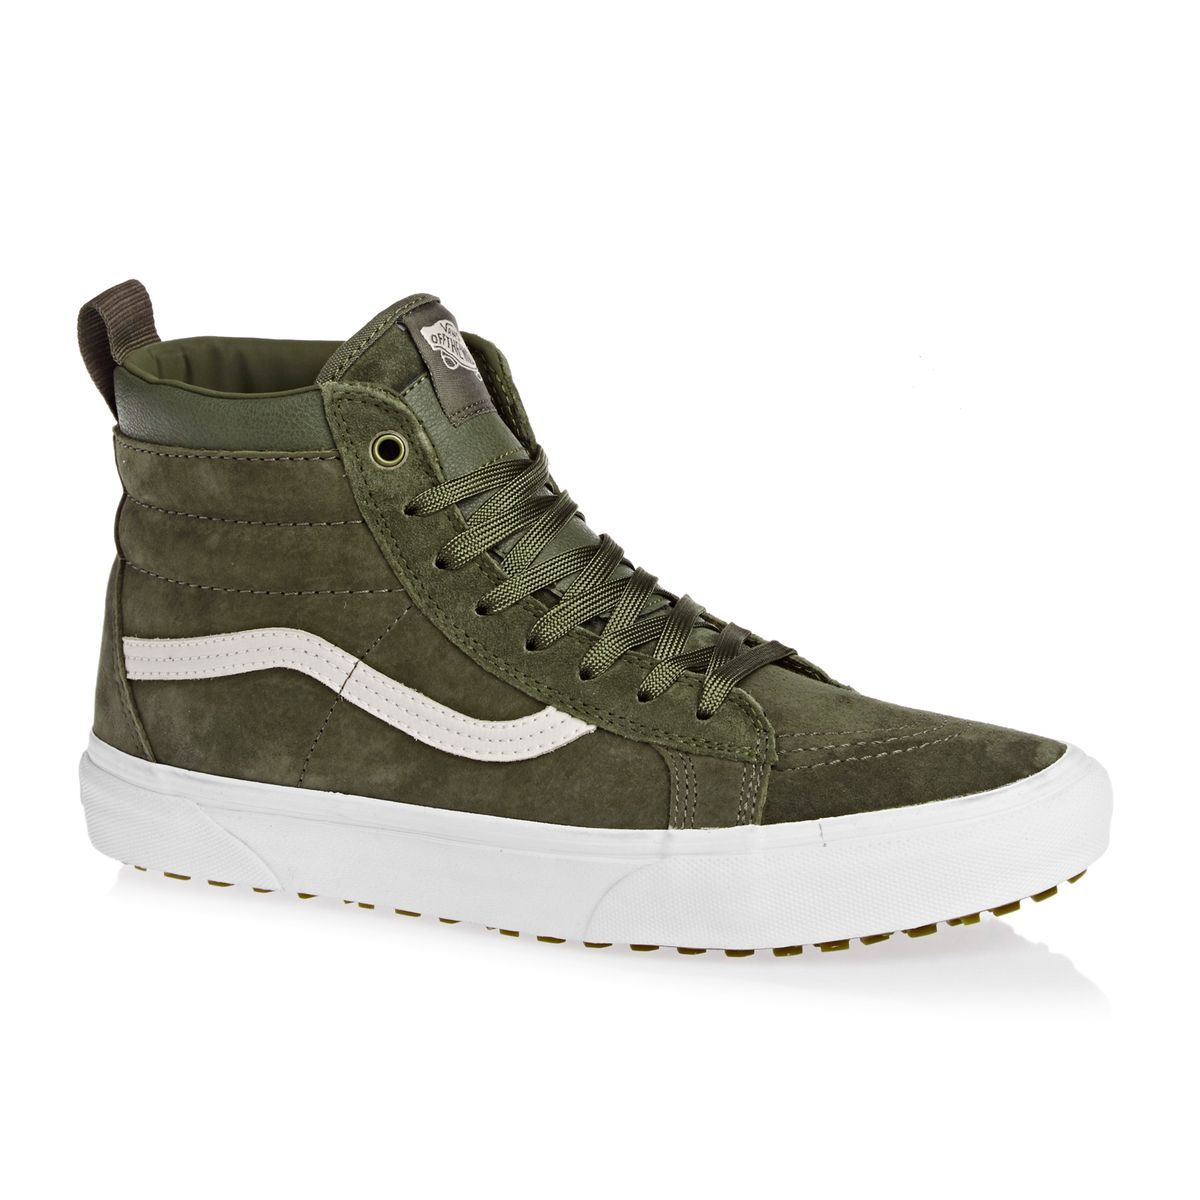 04e63f8751 Buy Vans Ua Sk8-hi Mte Shoes- Winter Moss Military with great prices